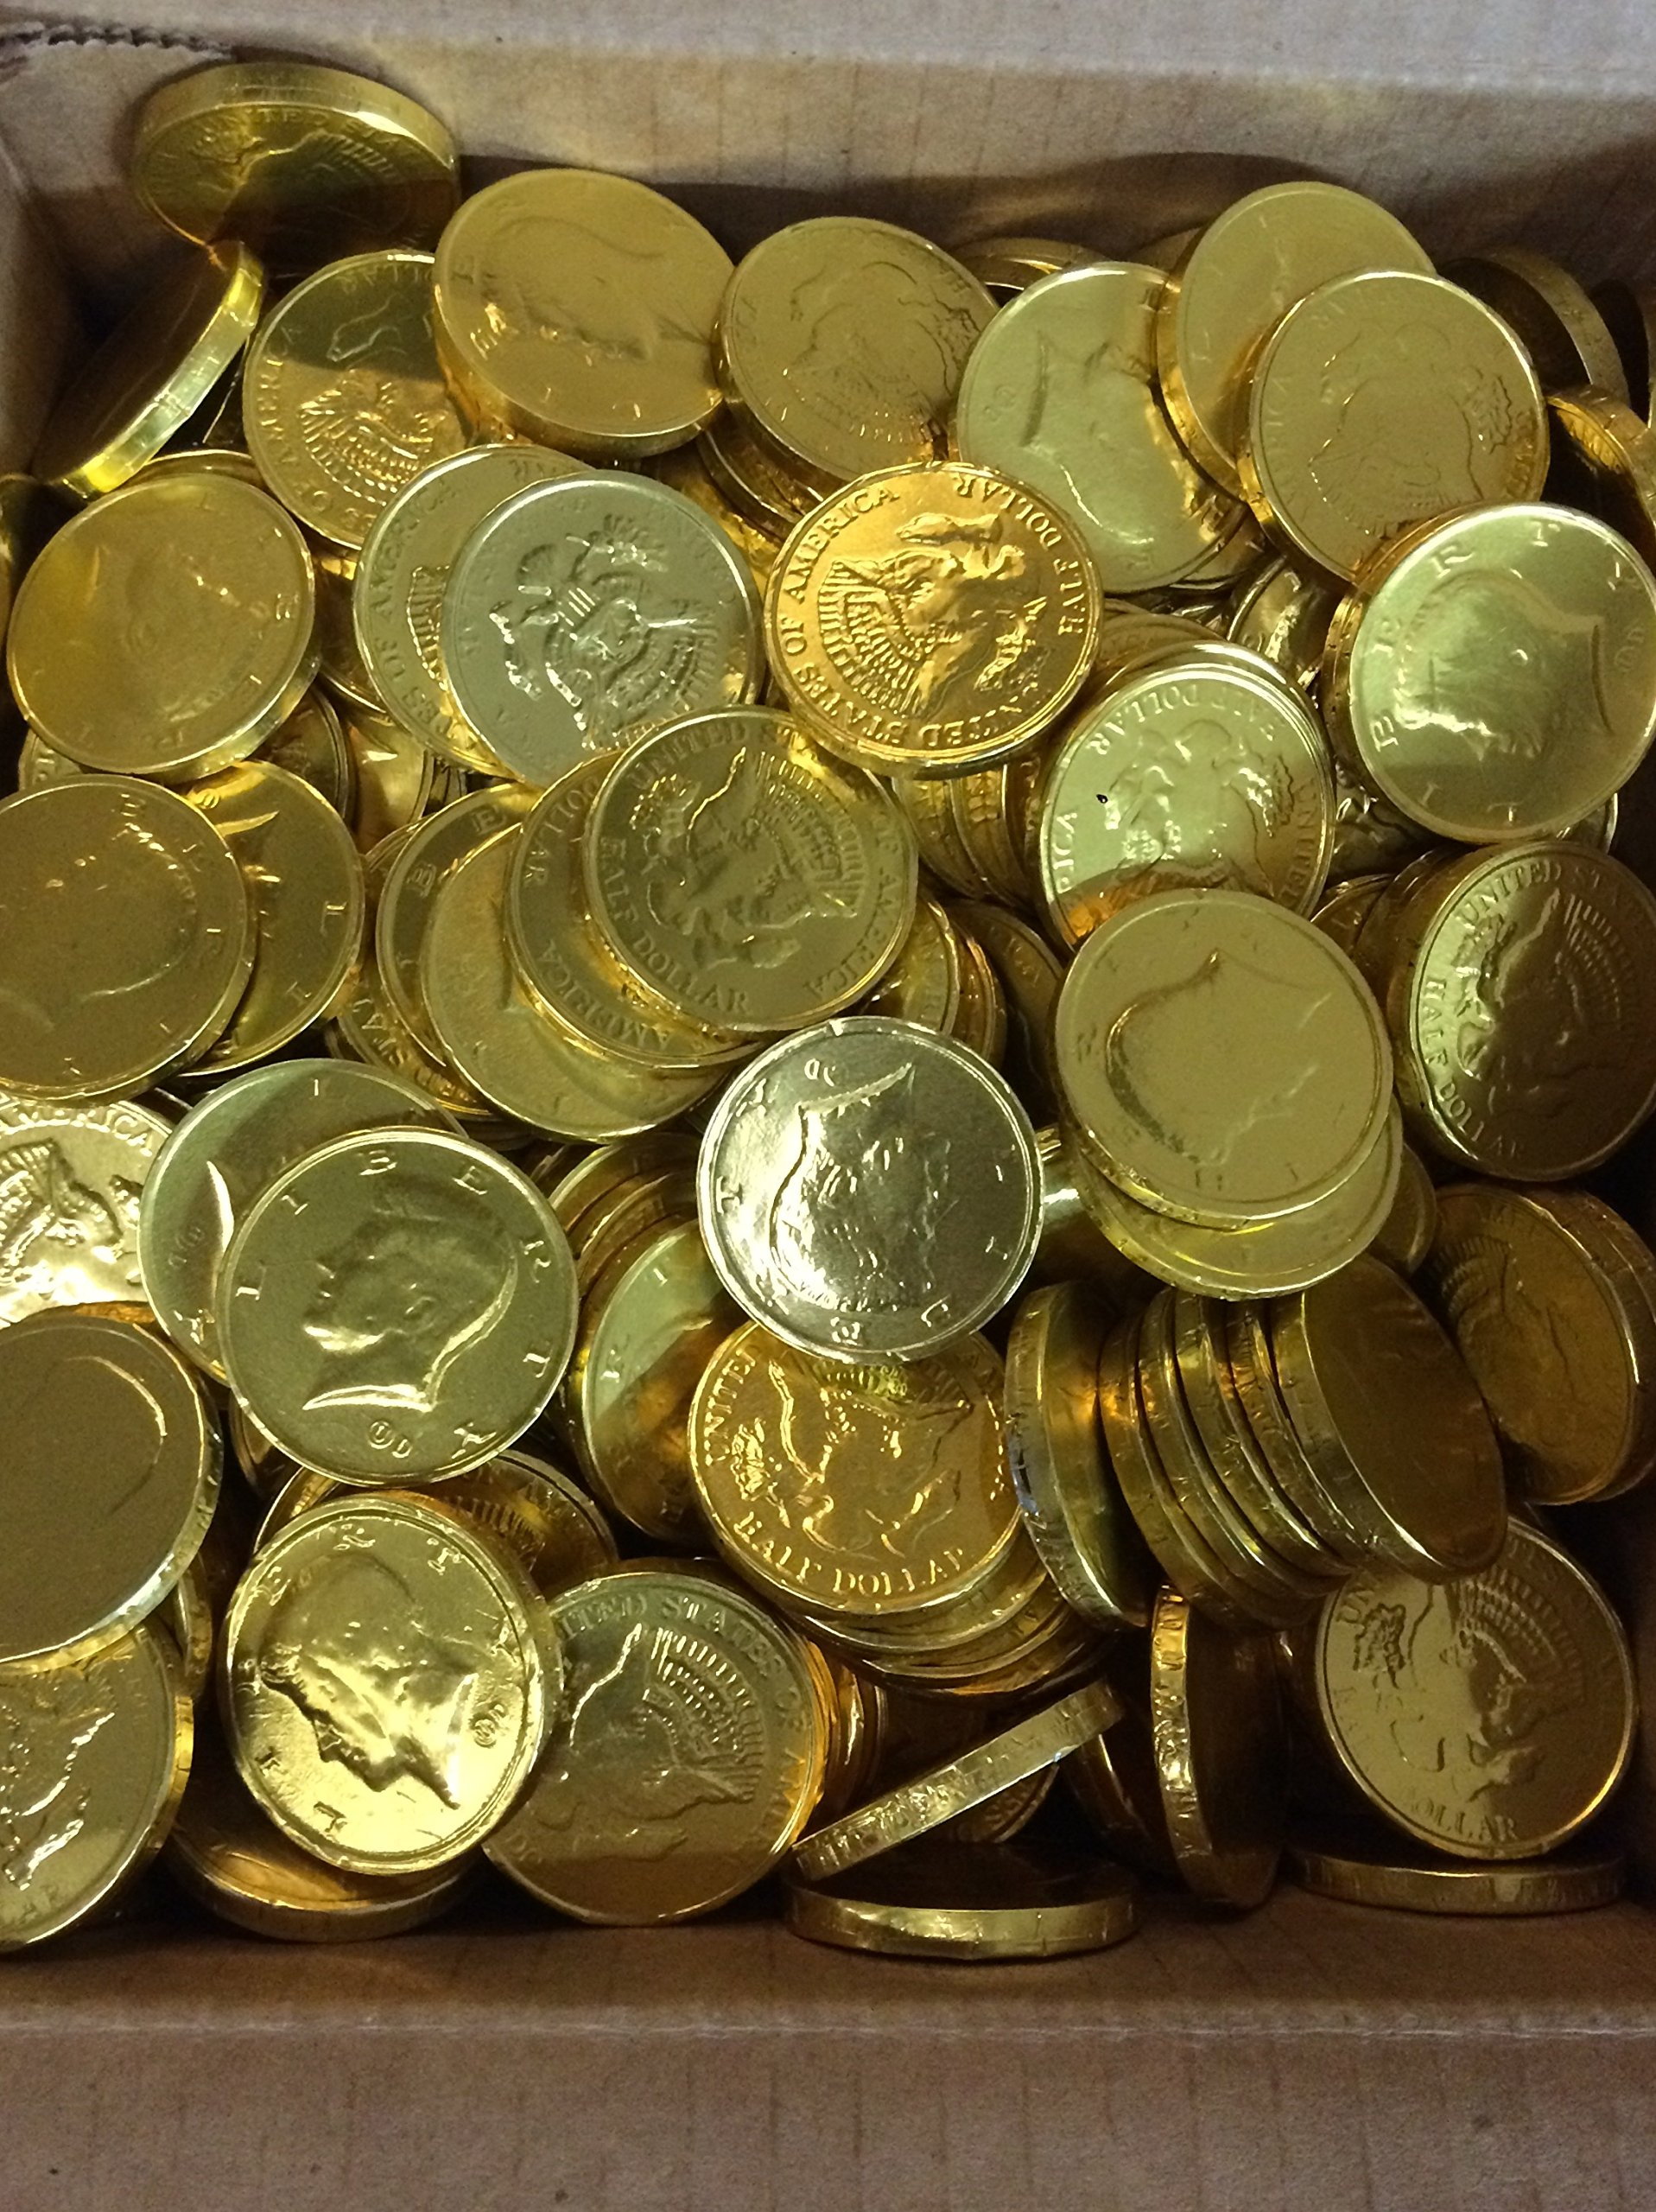 Solid Milk Chocolate Large Kennedy Gold Foil Coins - 10 Pound Box - Wholesale Bulk